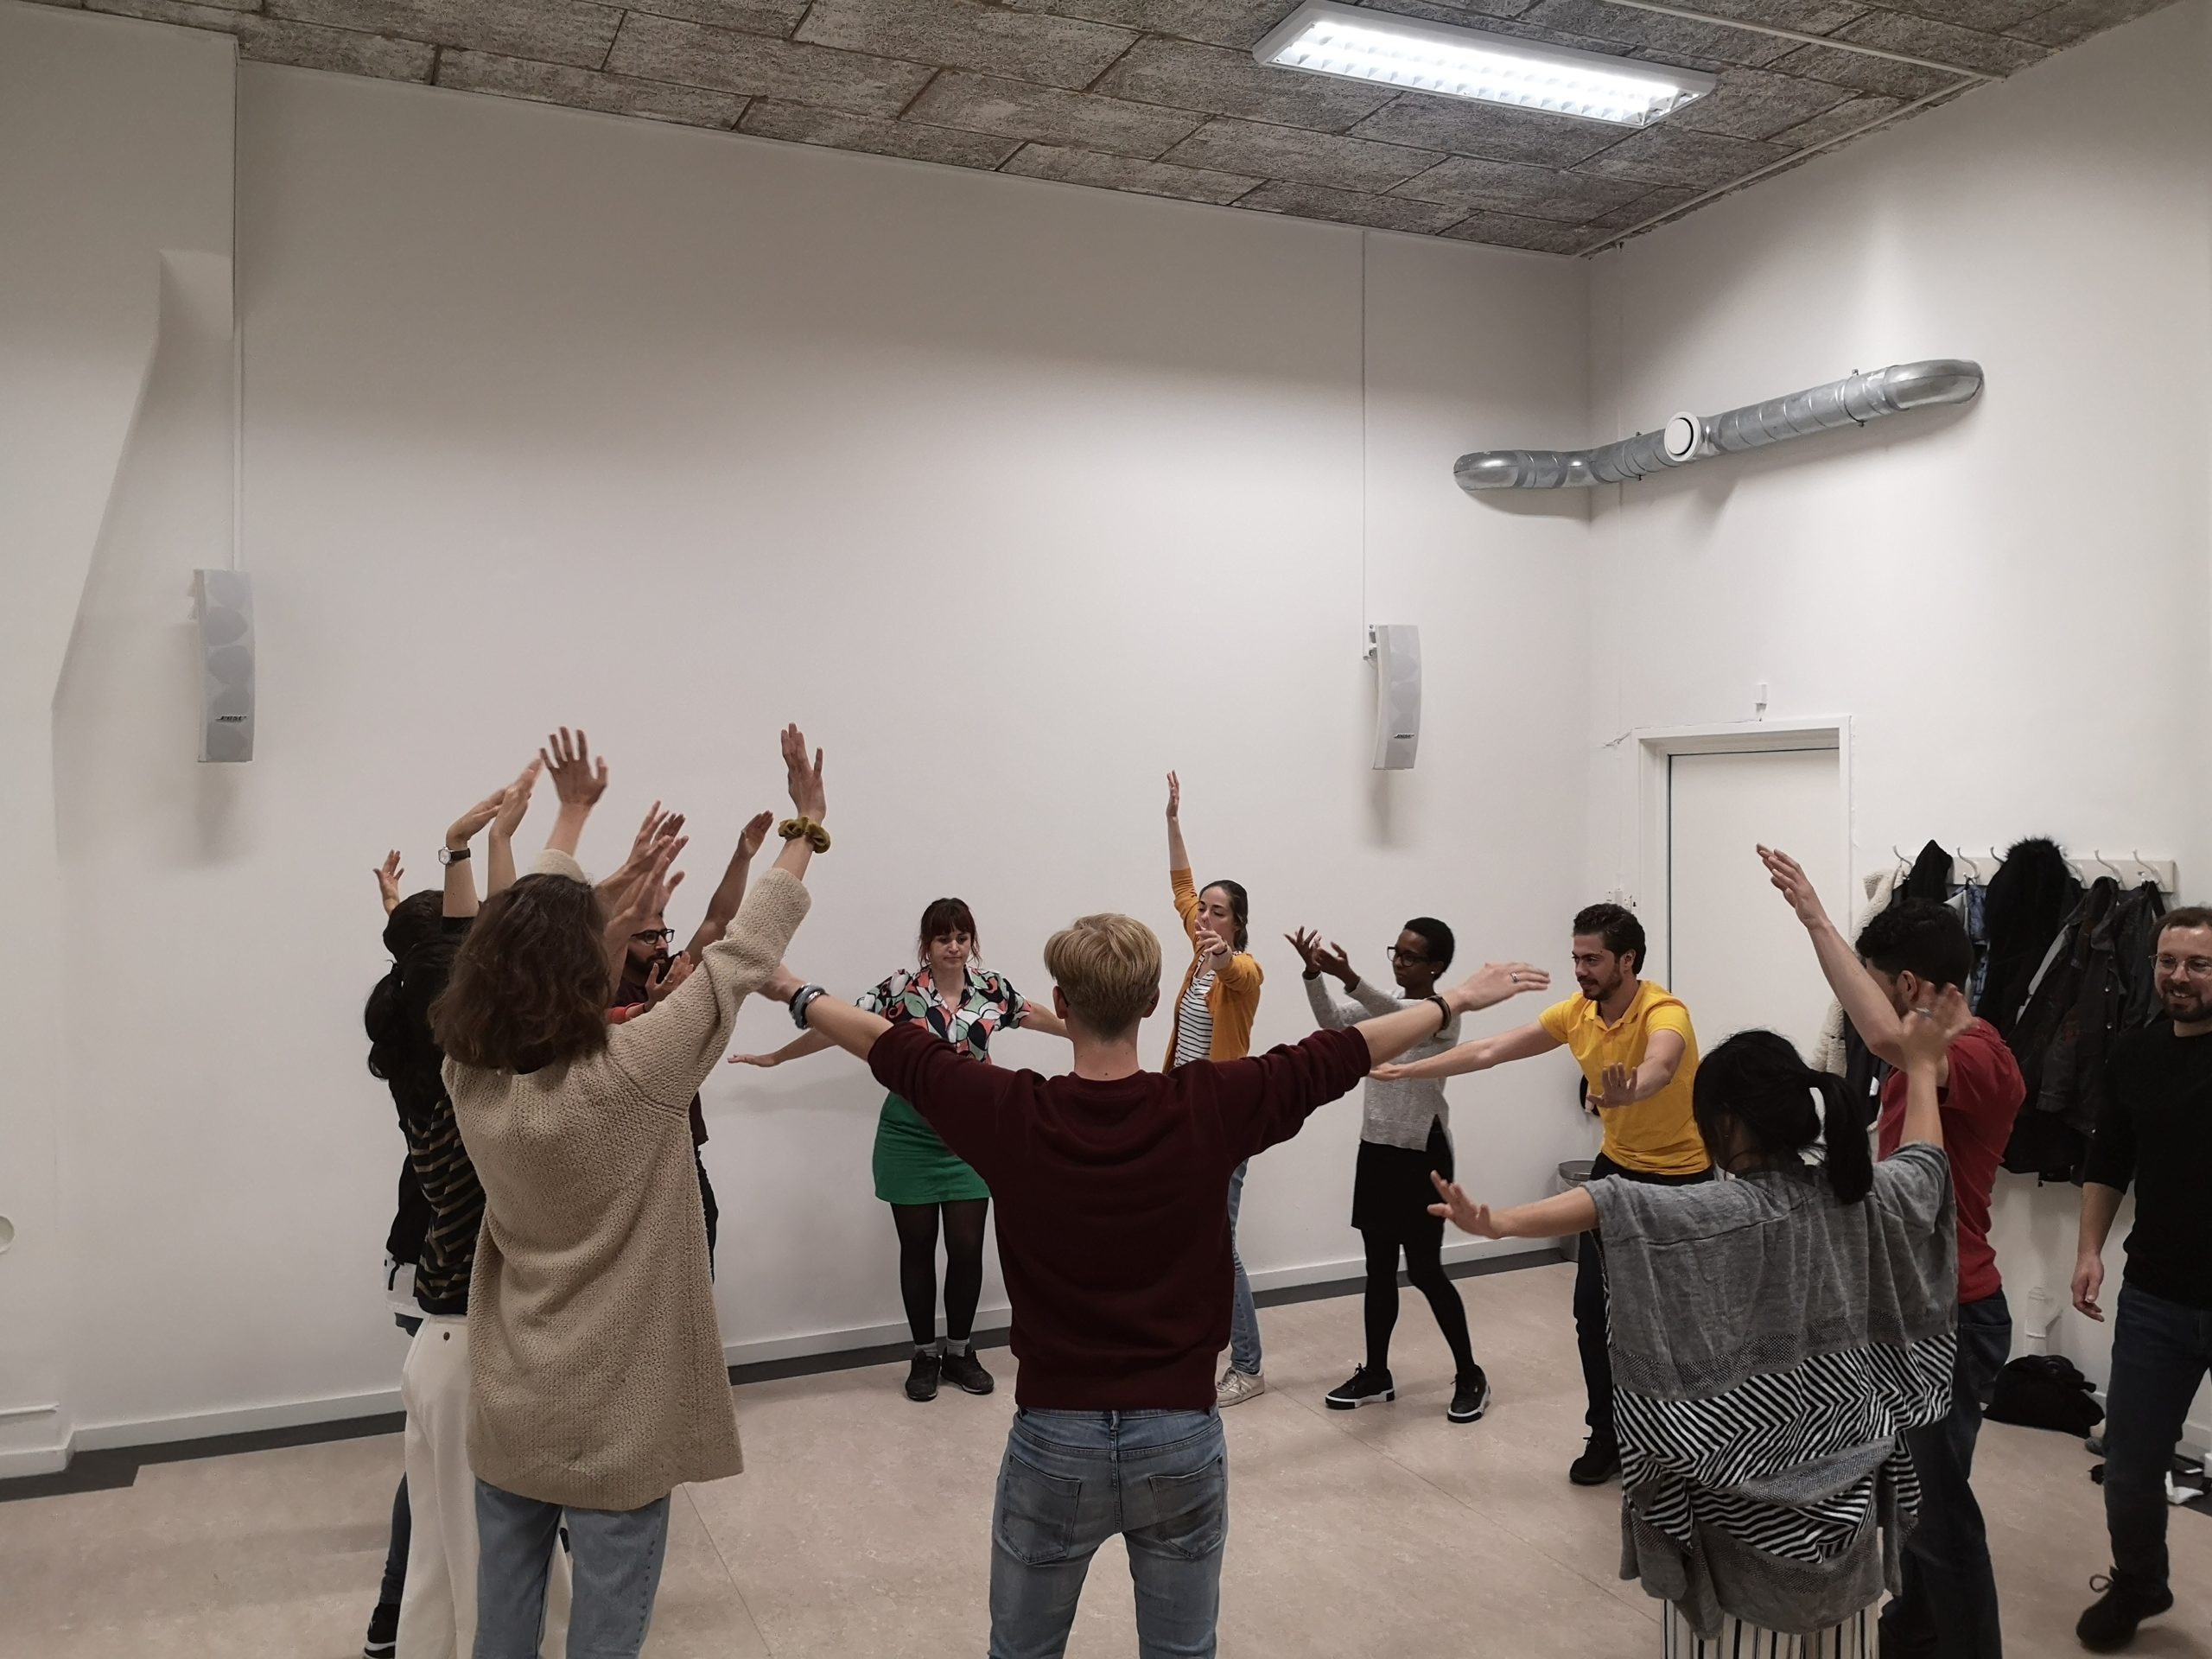 Pure improv for beginners. A group of people form a semi-circle holding their hands up in the air. Some hold their arms sideways.